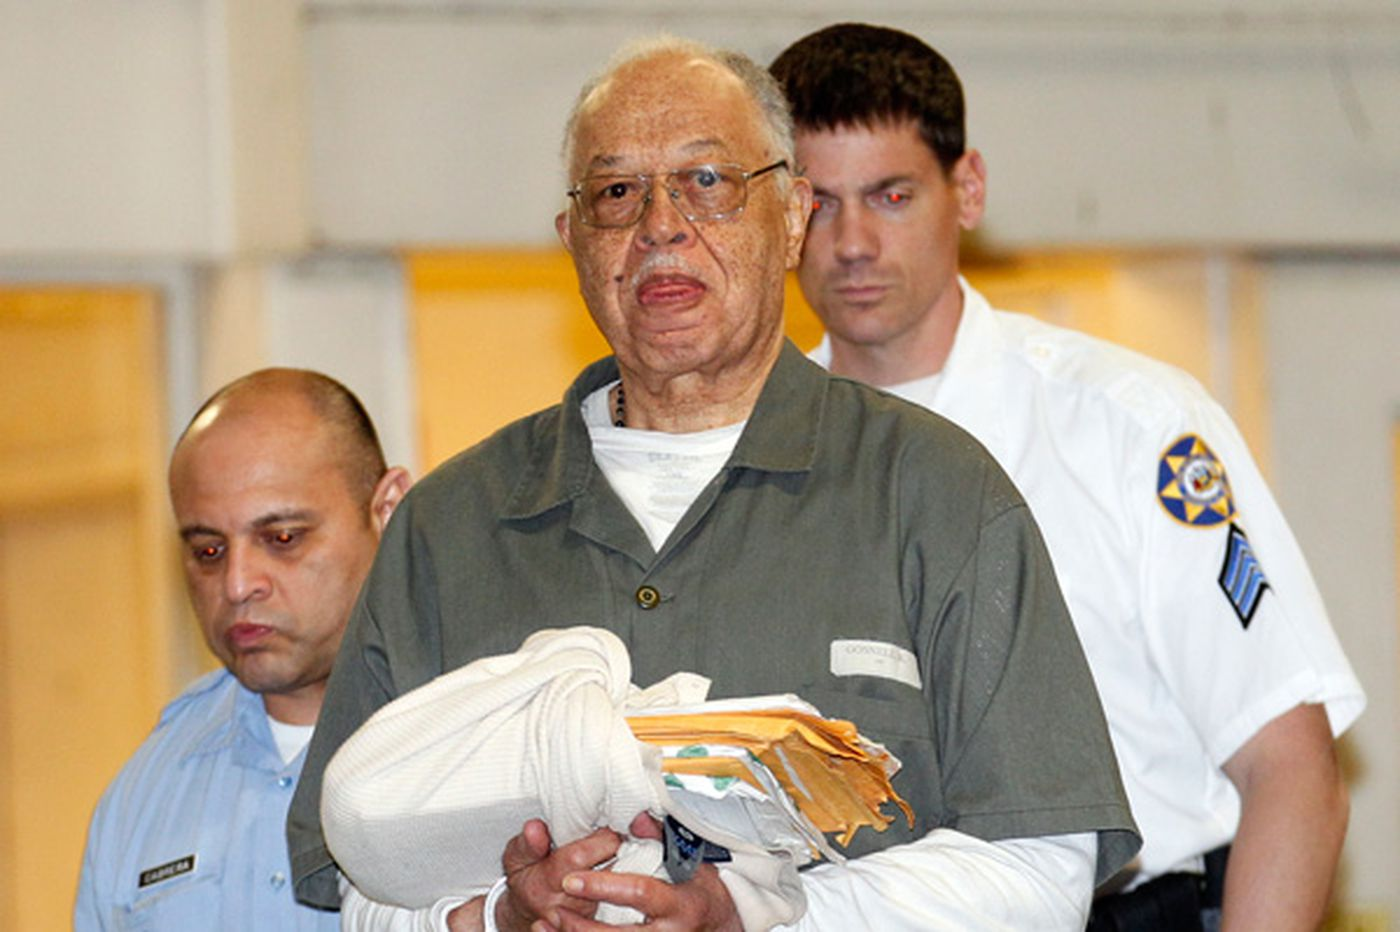 Filmmakers hoping to make Gosnell story into TV movie